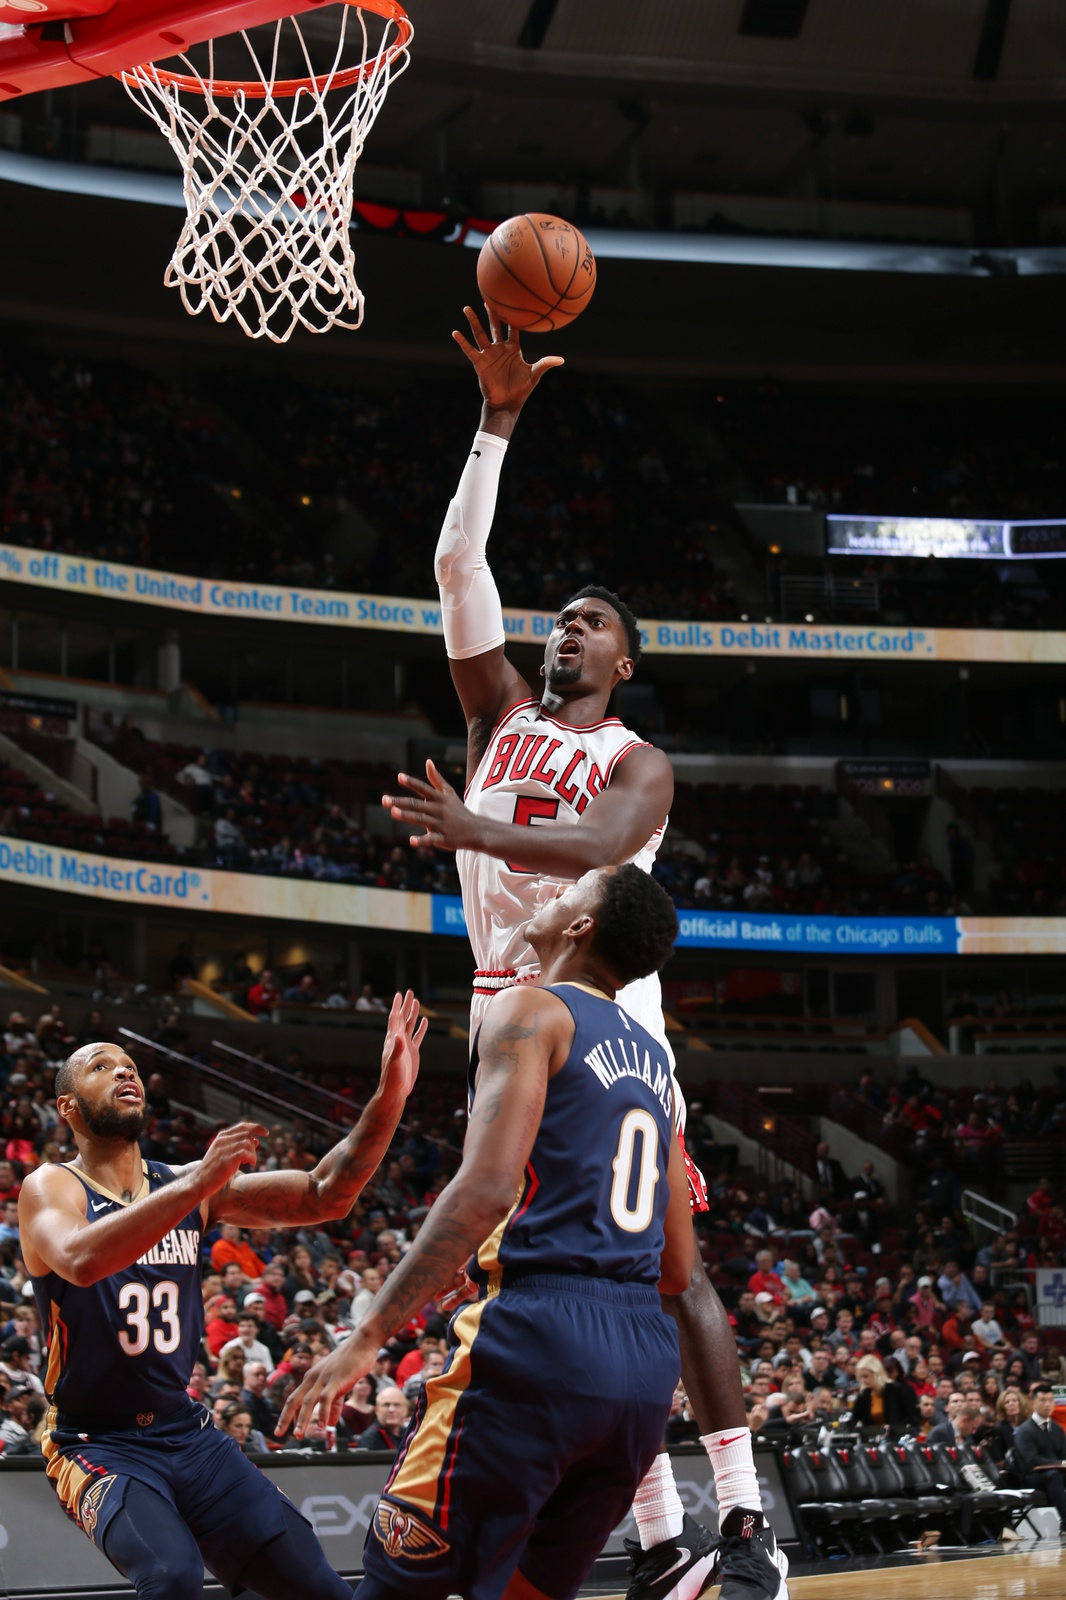 Bobby Portis #5 of the Chicago Bulls shoots the ball against the New Orleans Pelicans during a pre-season game on September 30, 2018 at the United Center in Chicago, Illinois.